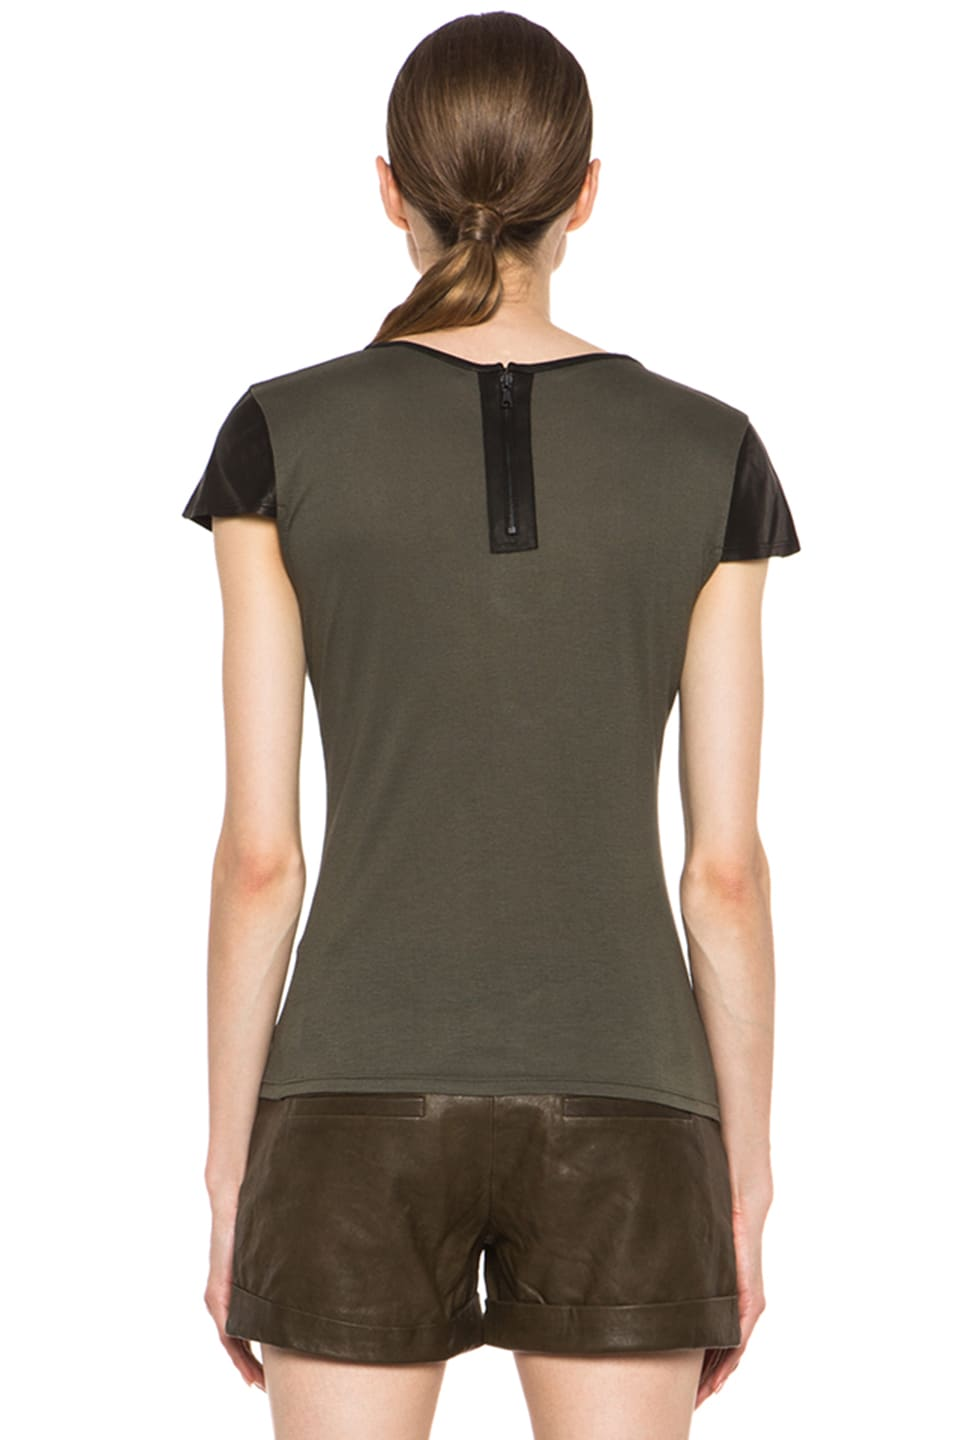 Image 4 of Alice + Olivia Fitted Viscose Tee with Leather in Old Army